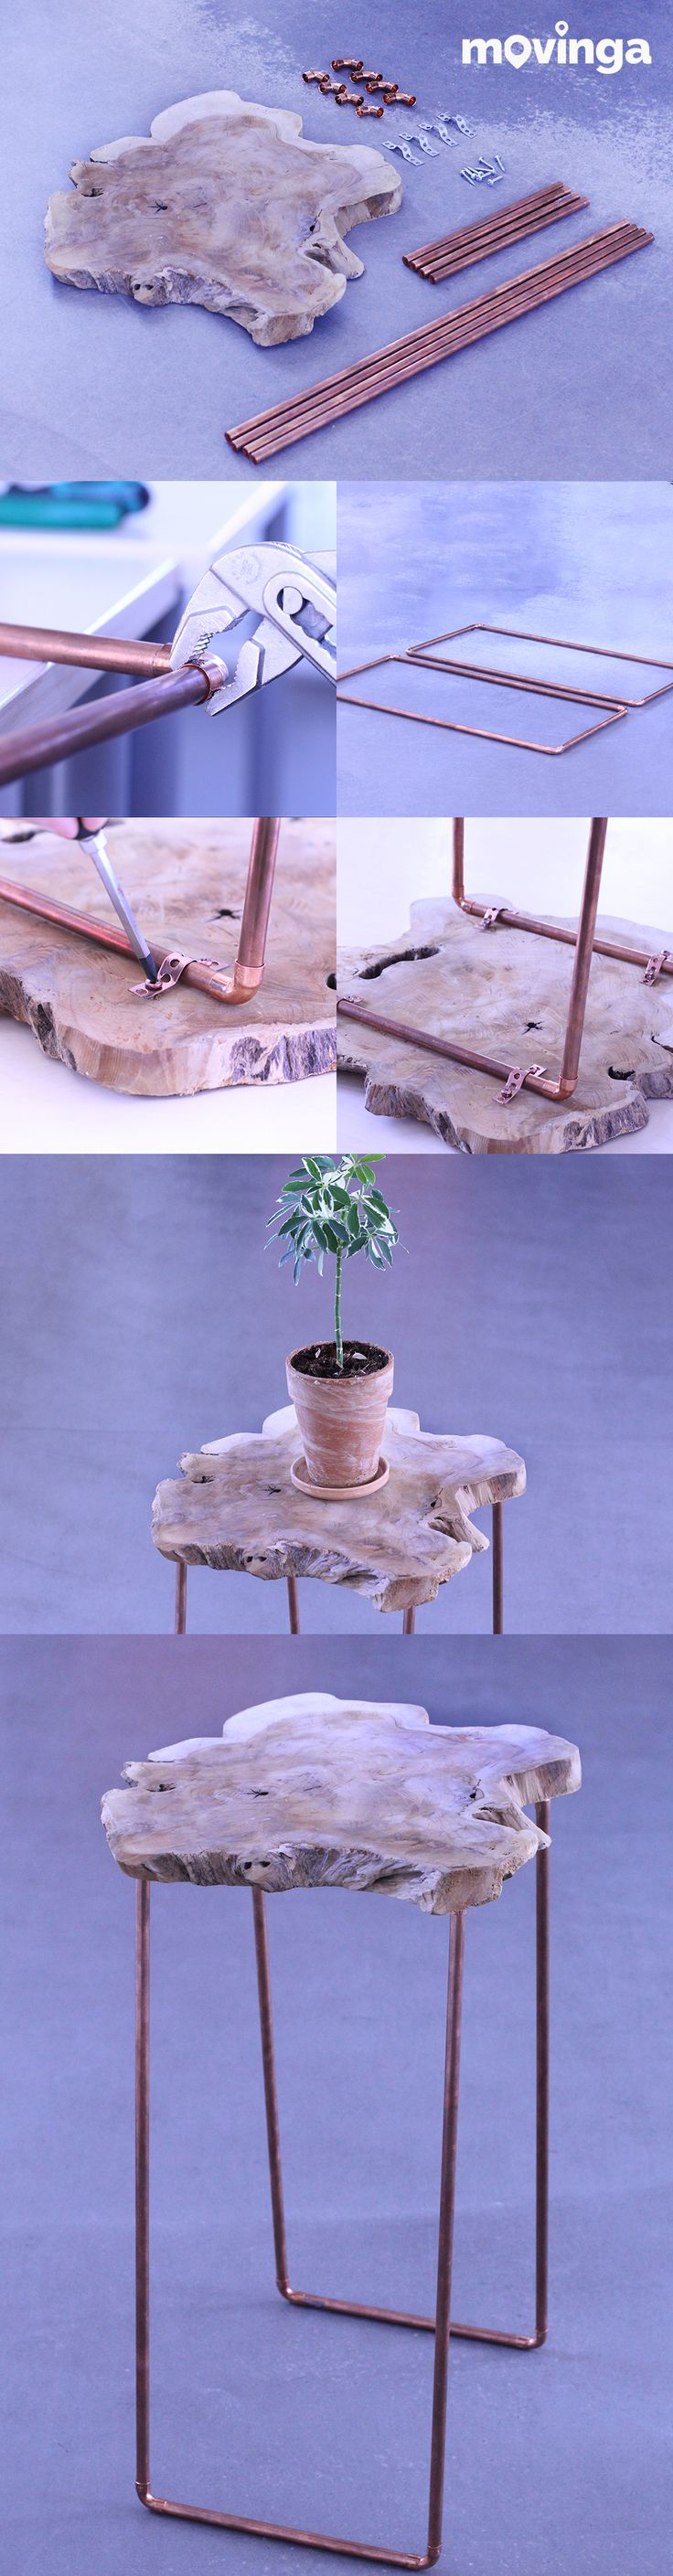 Build an easy DIY table with copper pipes and a wooden plate on a budget. Looks super cool and brings some industrial flair into your new apartment. Please repin if you like our post :)